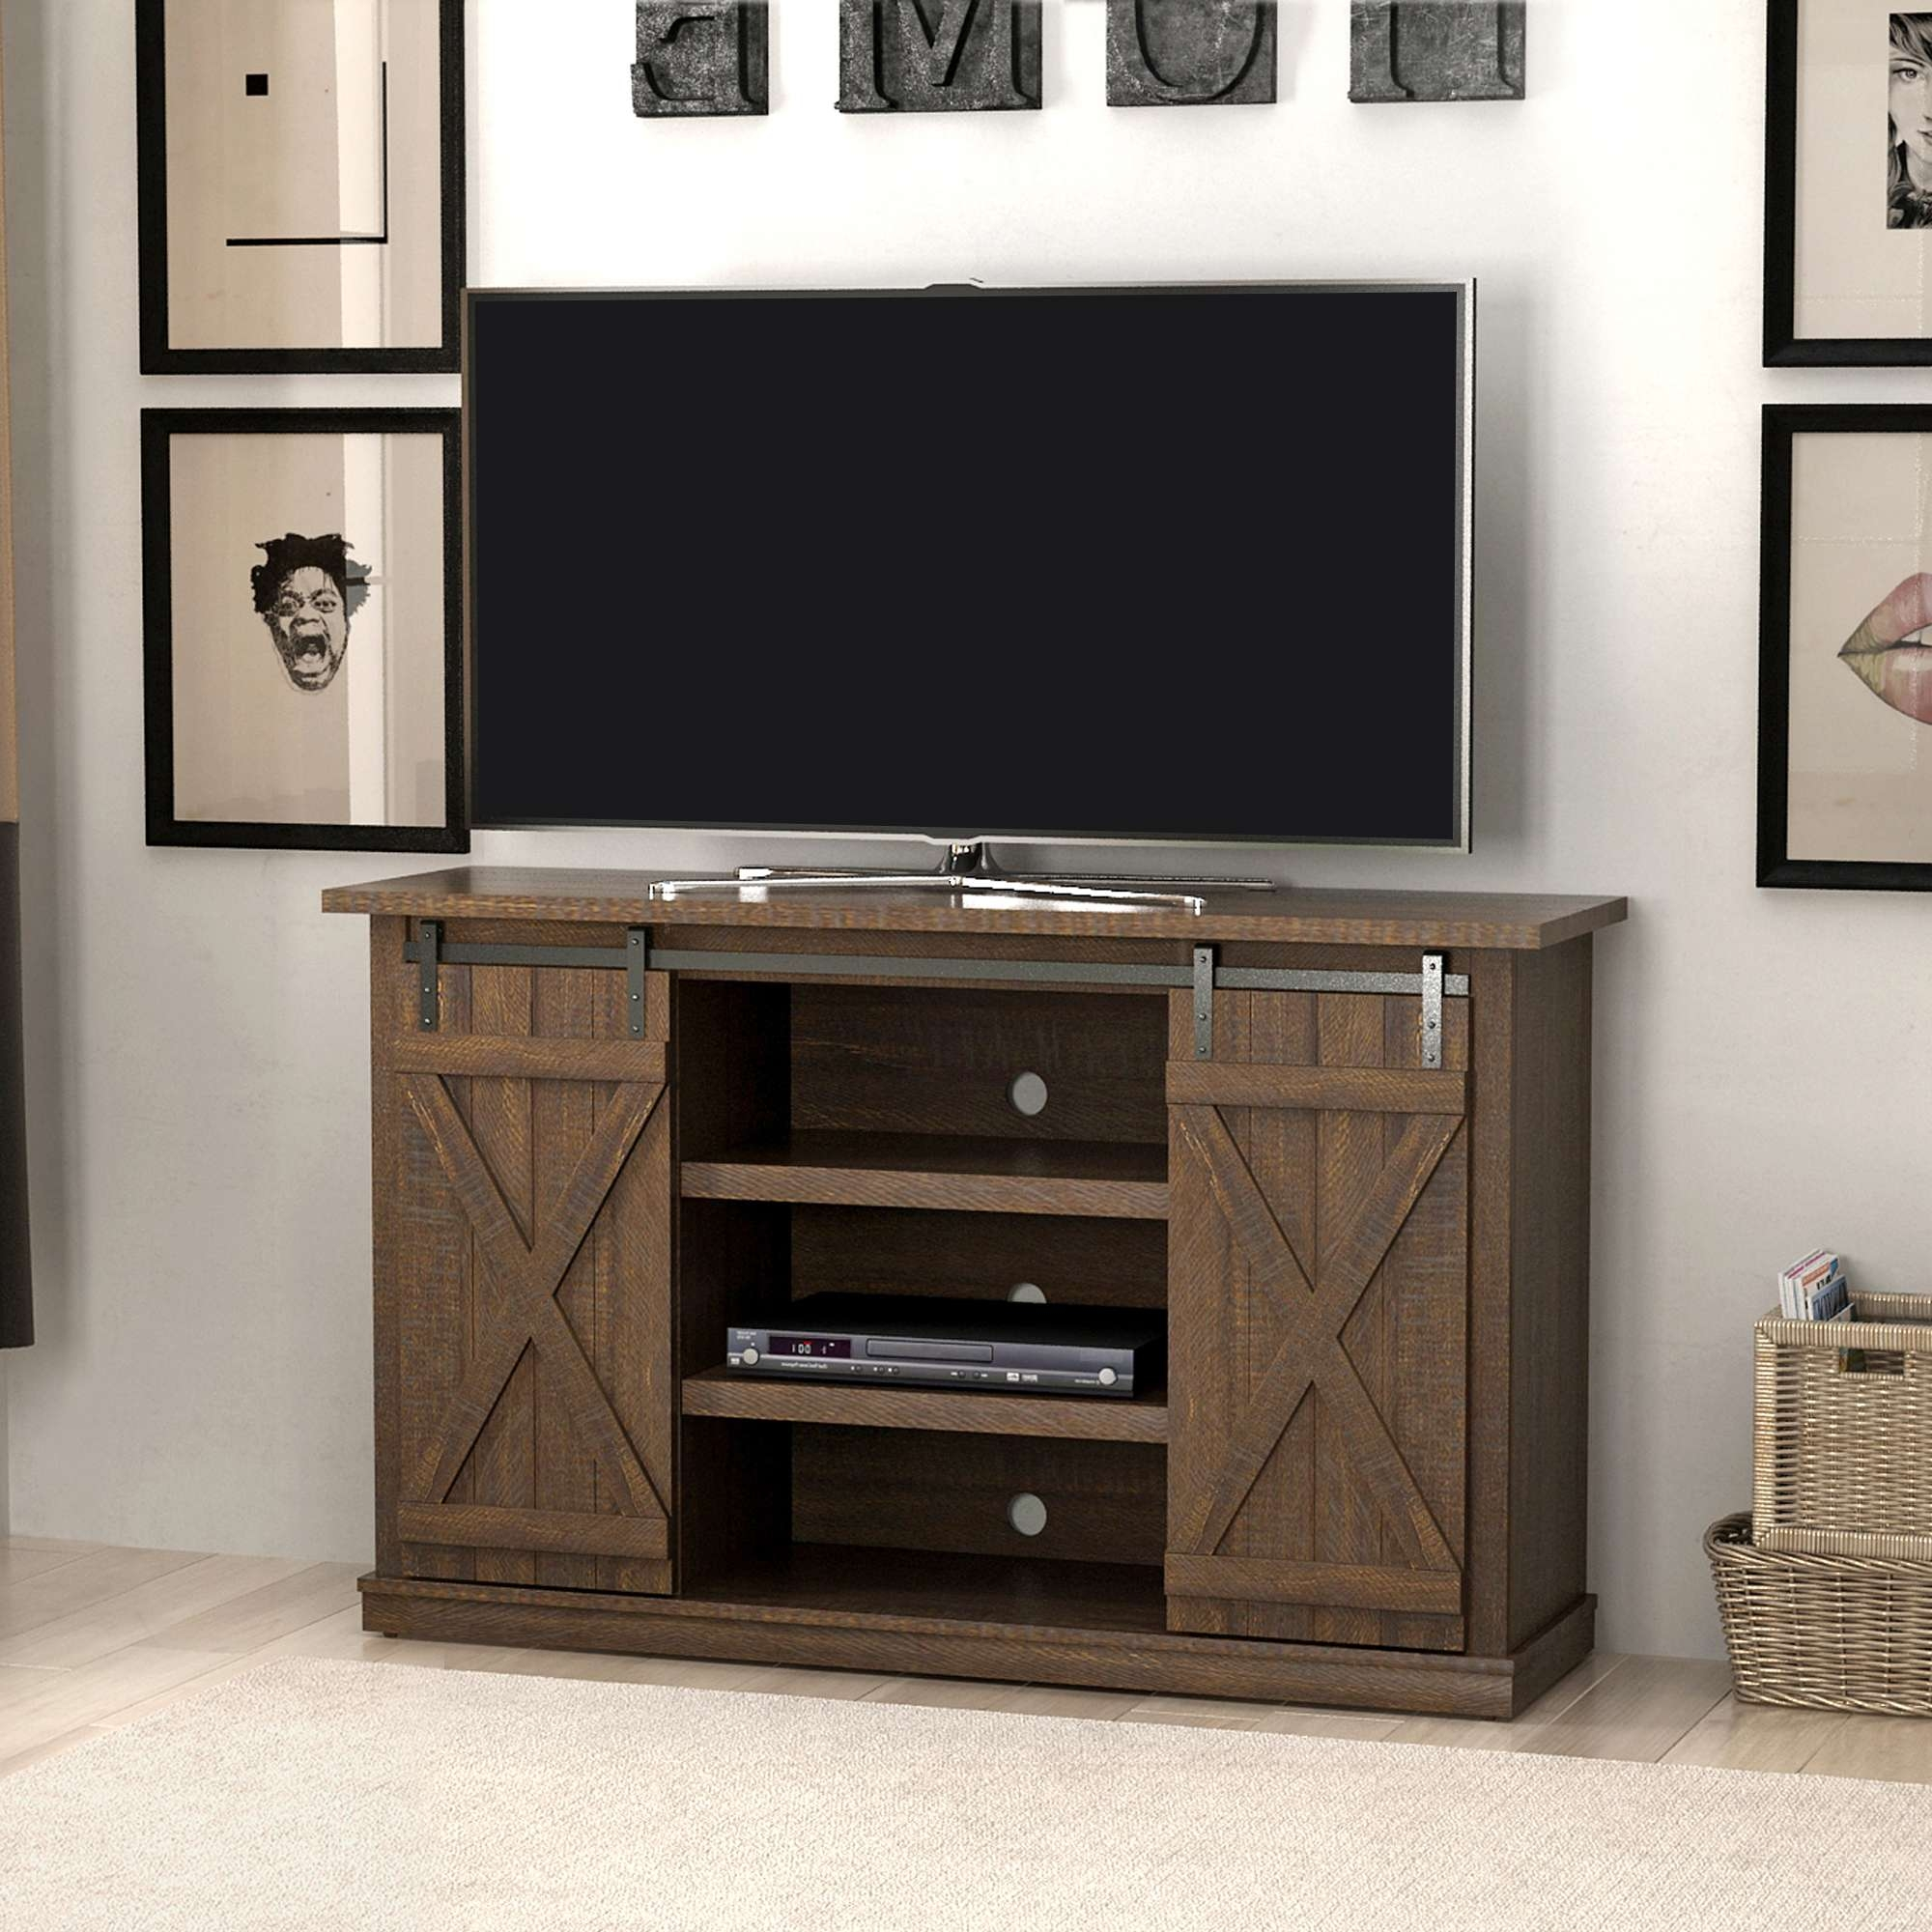 Tv Stands – Walmart Within Upright Tv Stands (View 20 of 20)